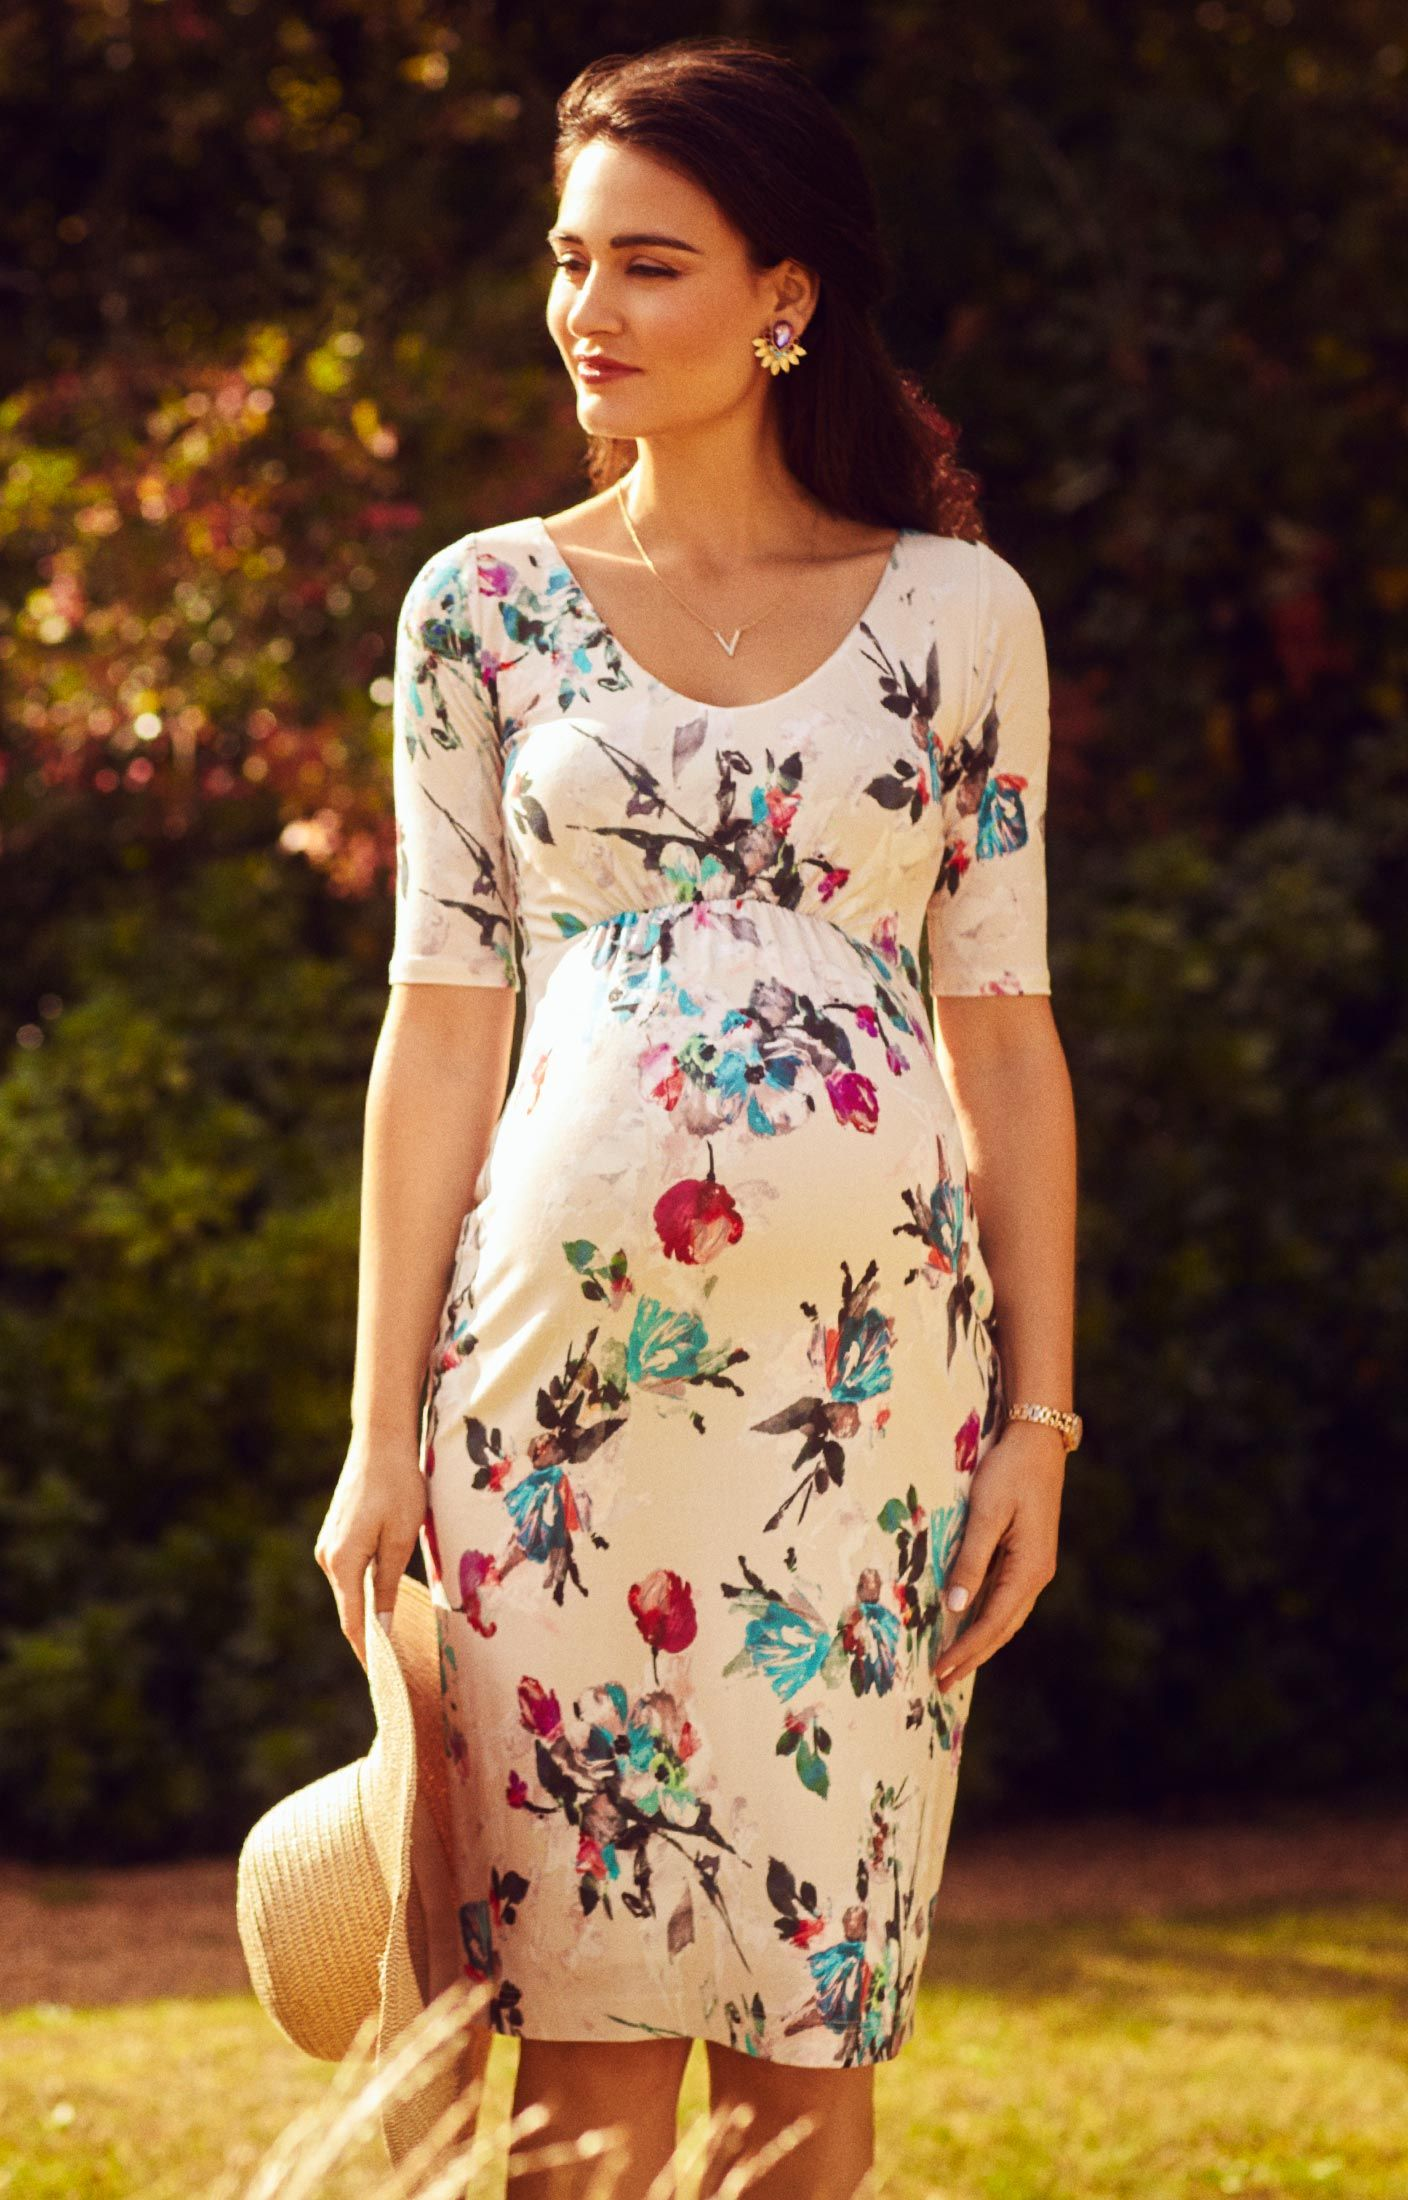 Tilly shift dress dress designs maternity dresses and floral our new painterly floral print tilly shift dress designed to bring you the perfect smart maternity ombrellifo Choice Image